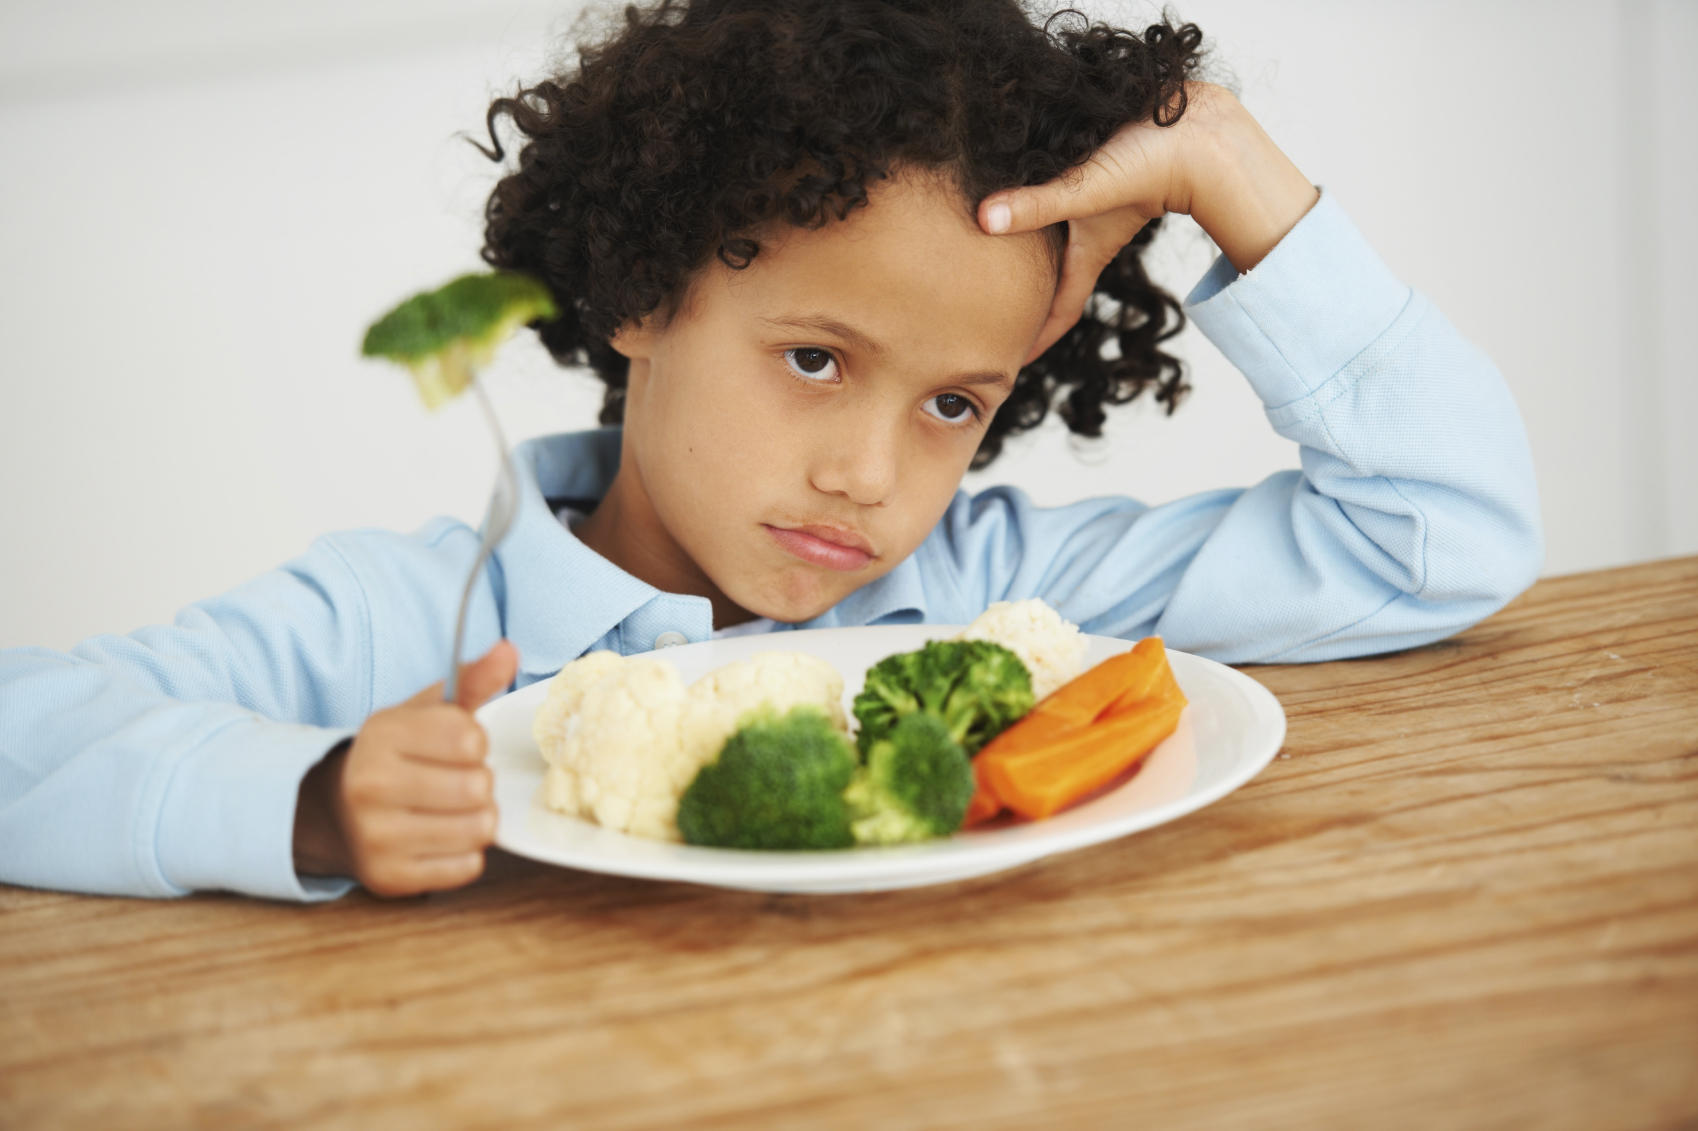 kid glumly sitting in front of a plate full of vegetables